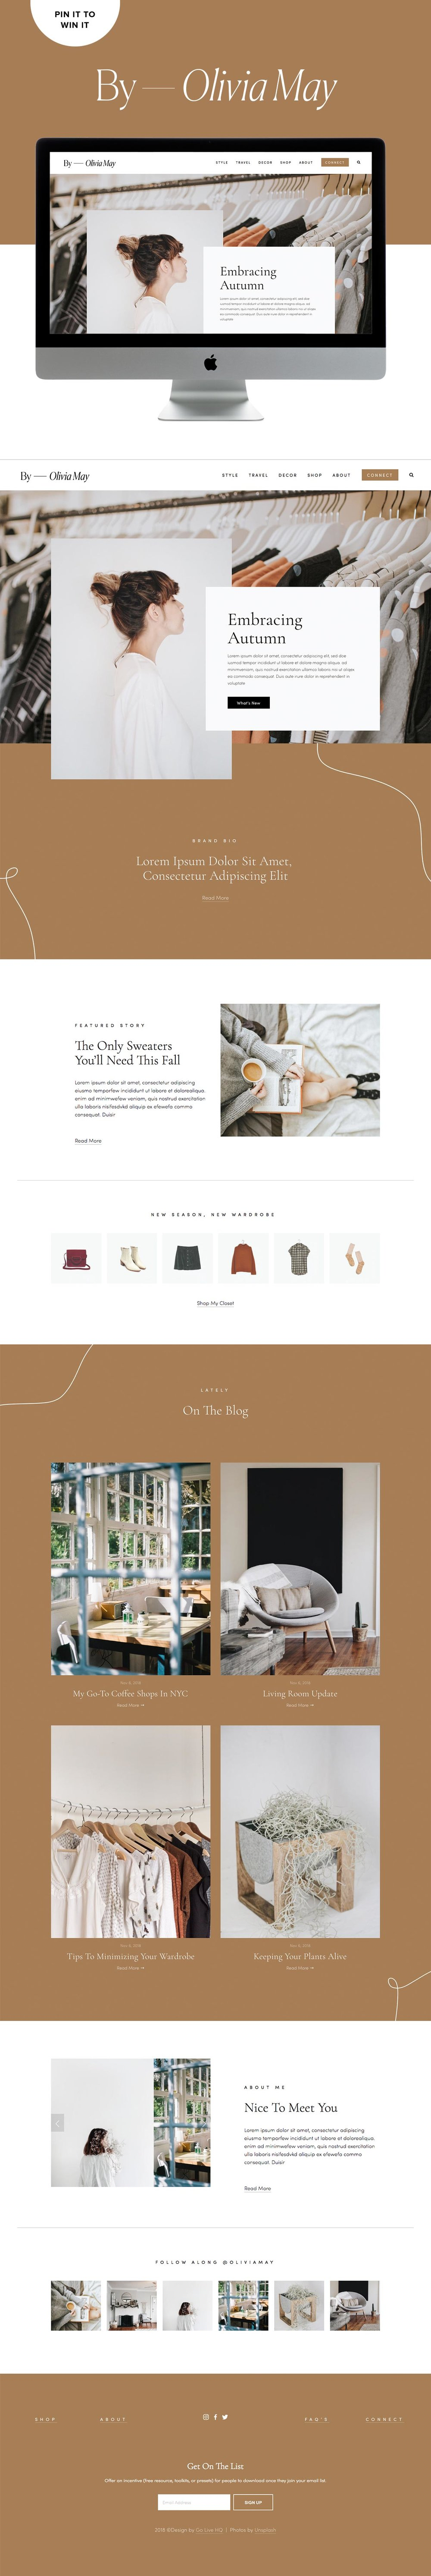 Minimal, Stylish, Modern Website Template for Style Bloggers | Go Live HQ